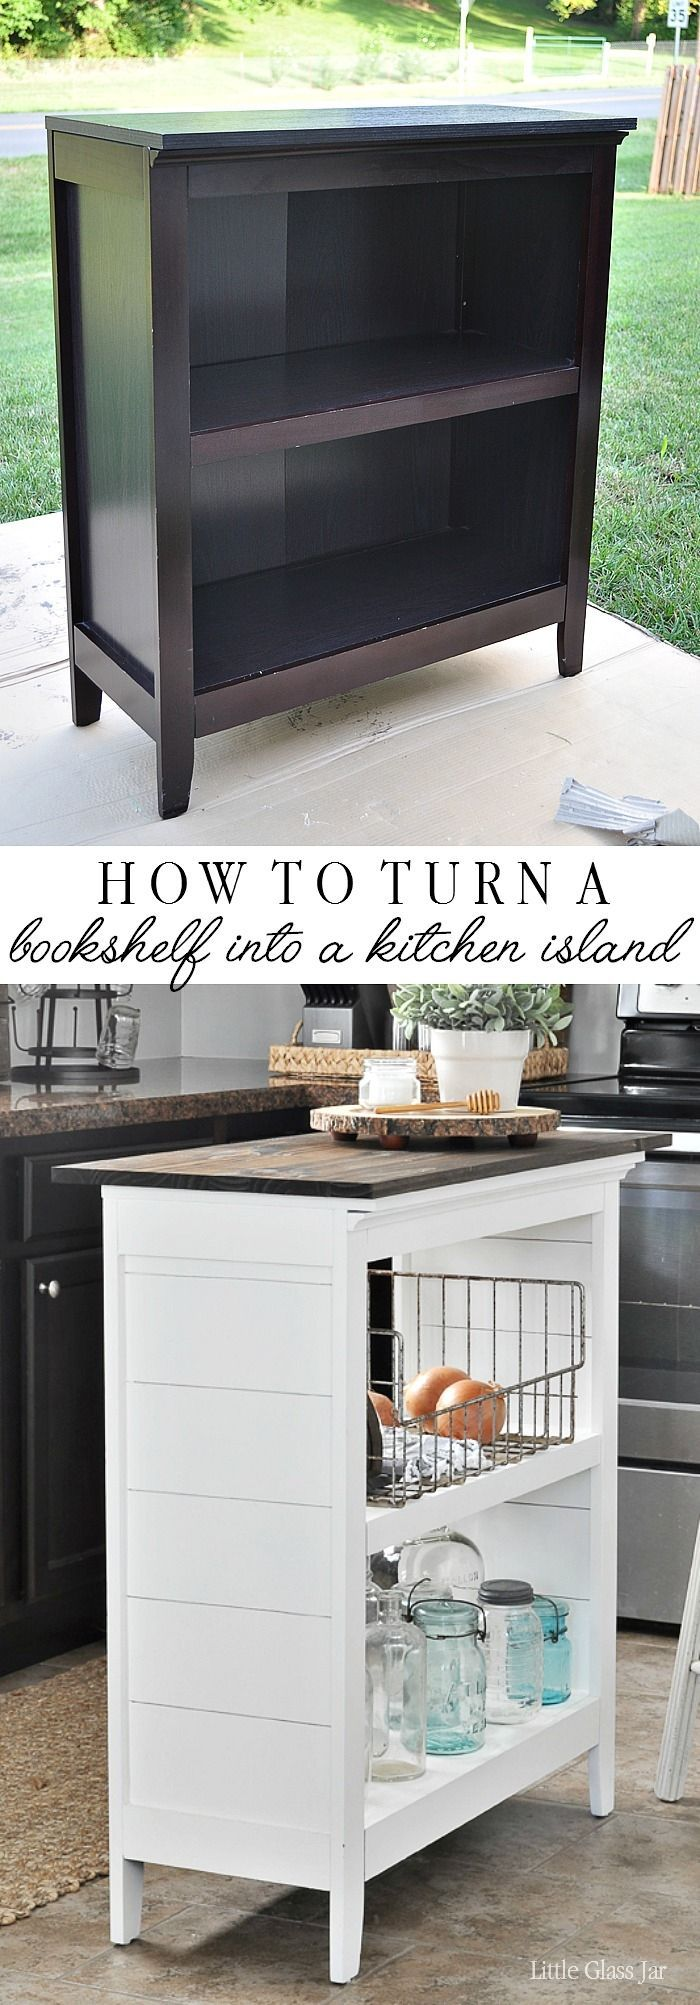 best 25 closed kitchen diy ideas only on pinterest above